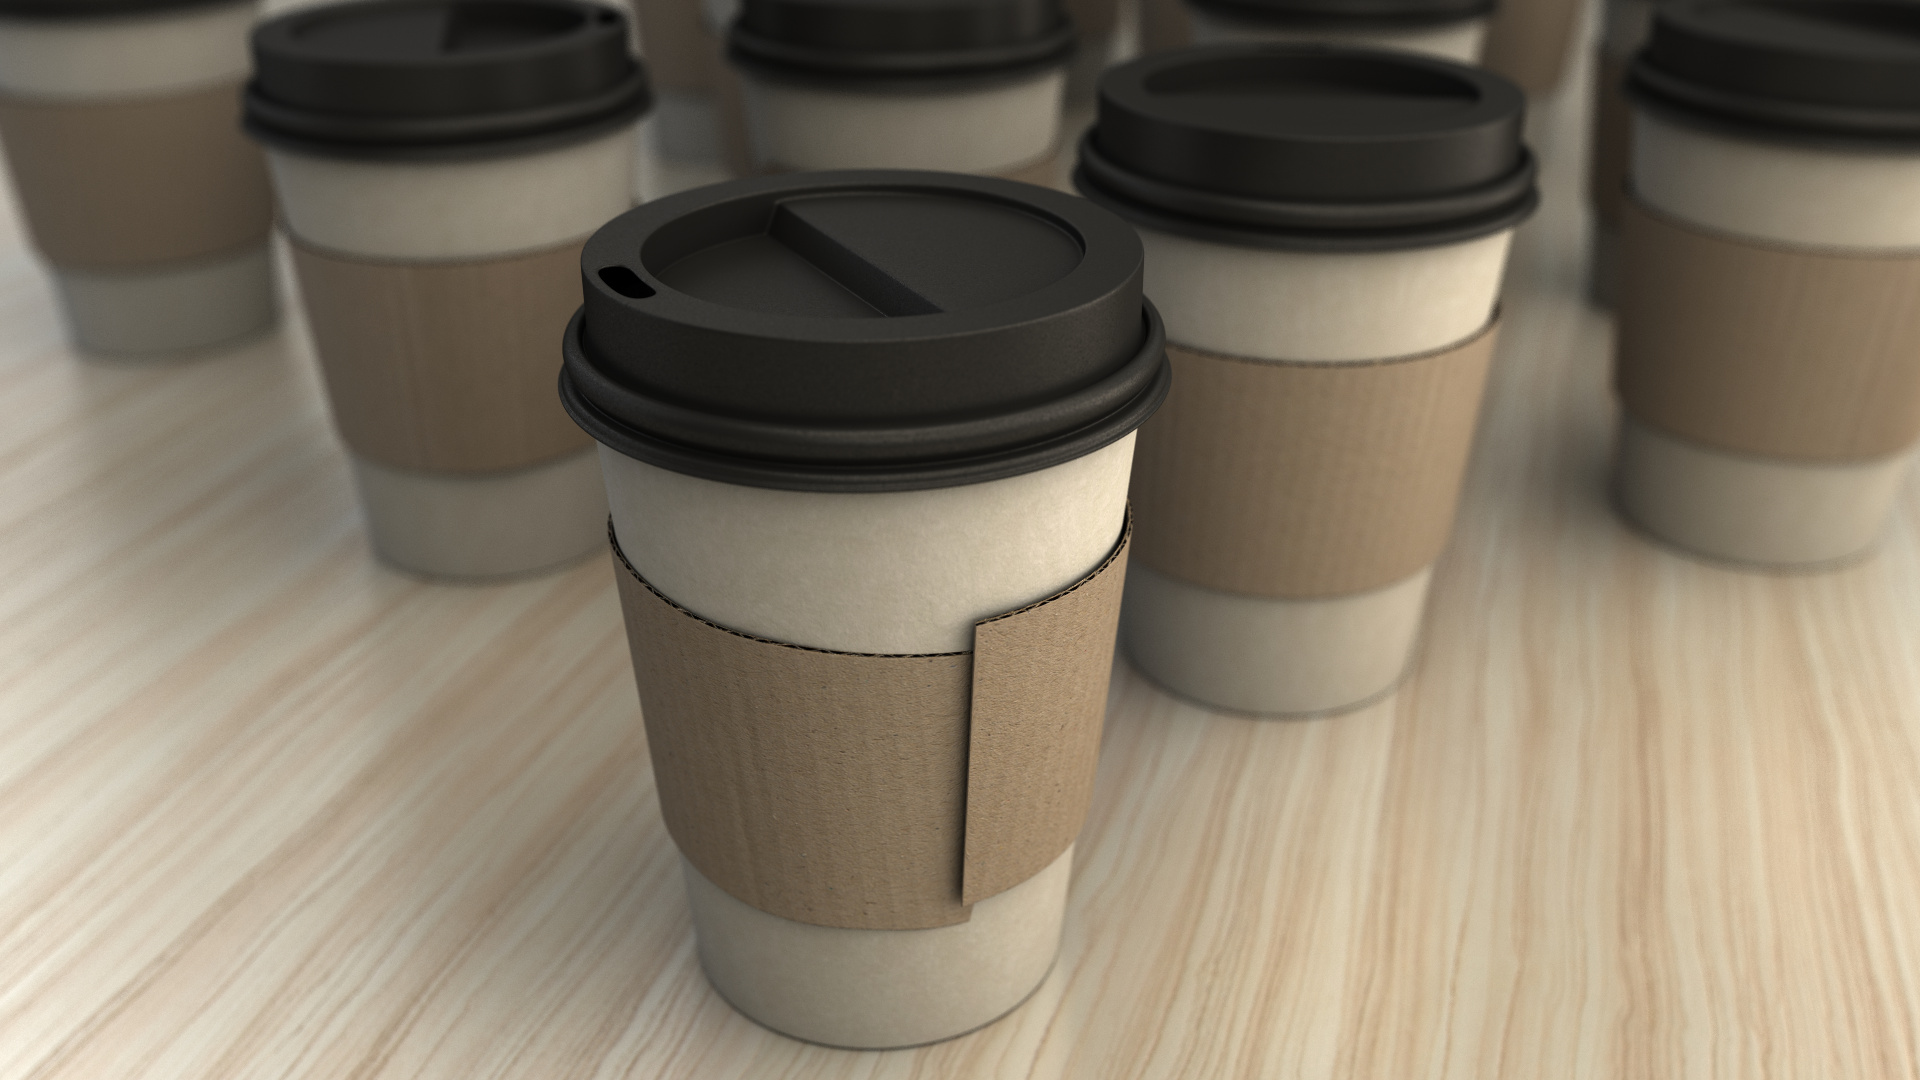 Coffee Cups Wallpapers High Quality